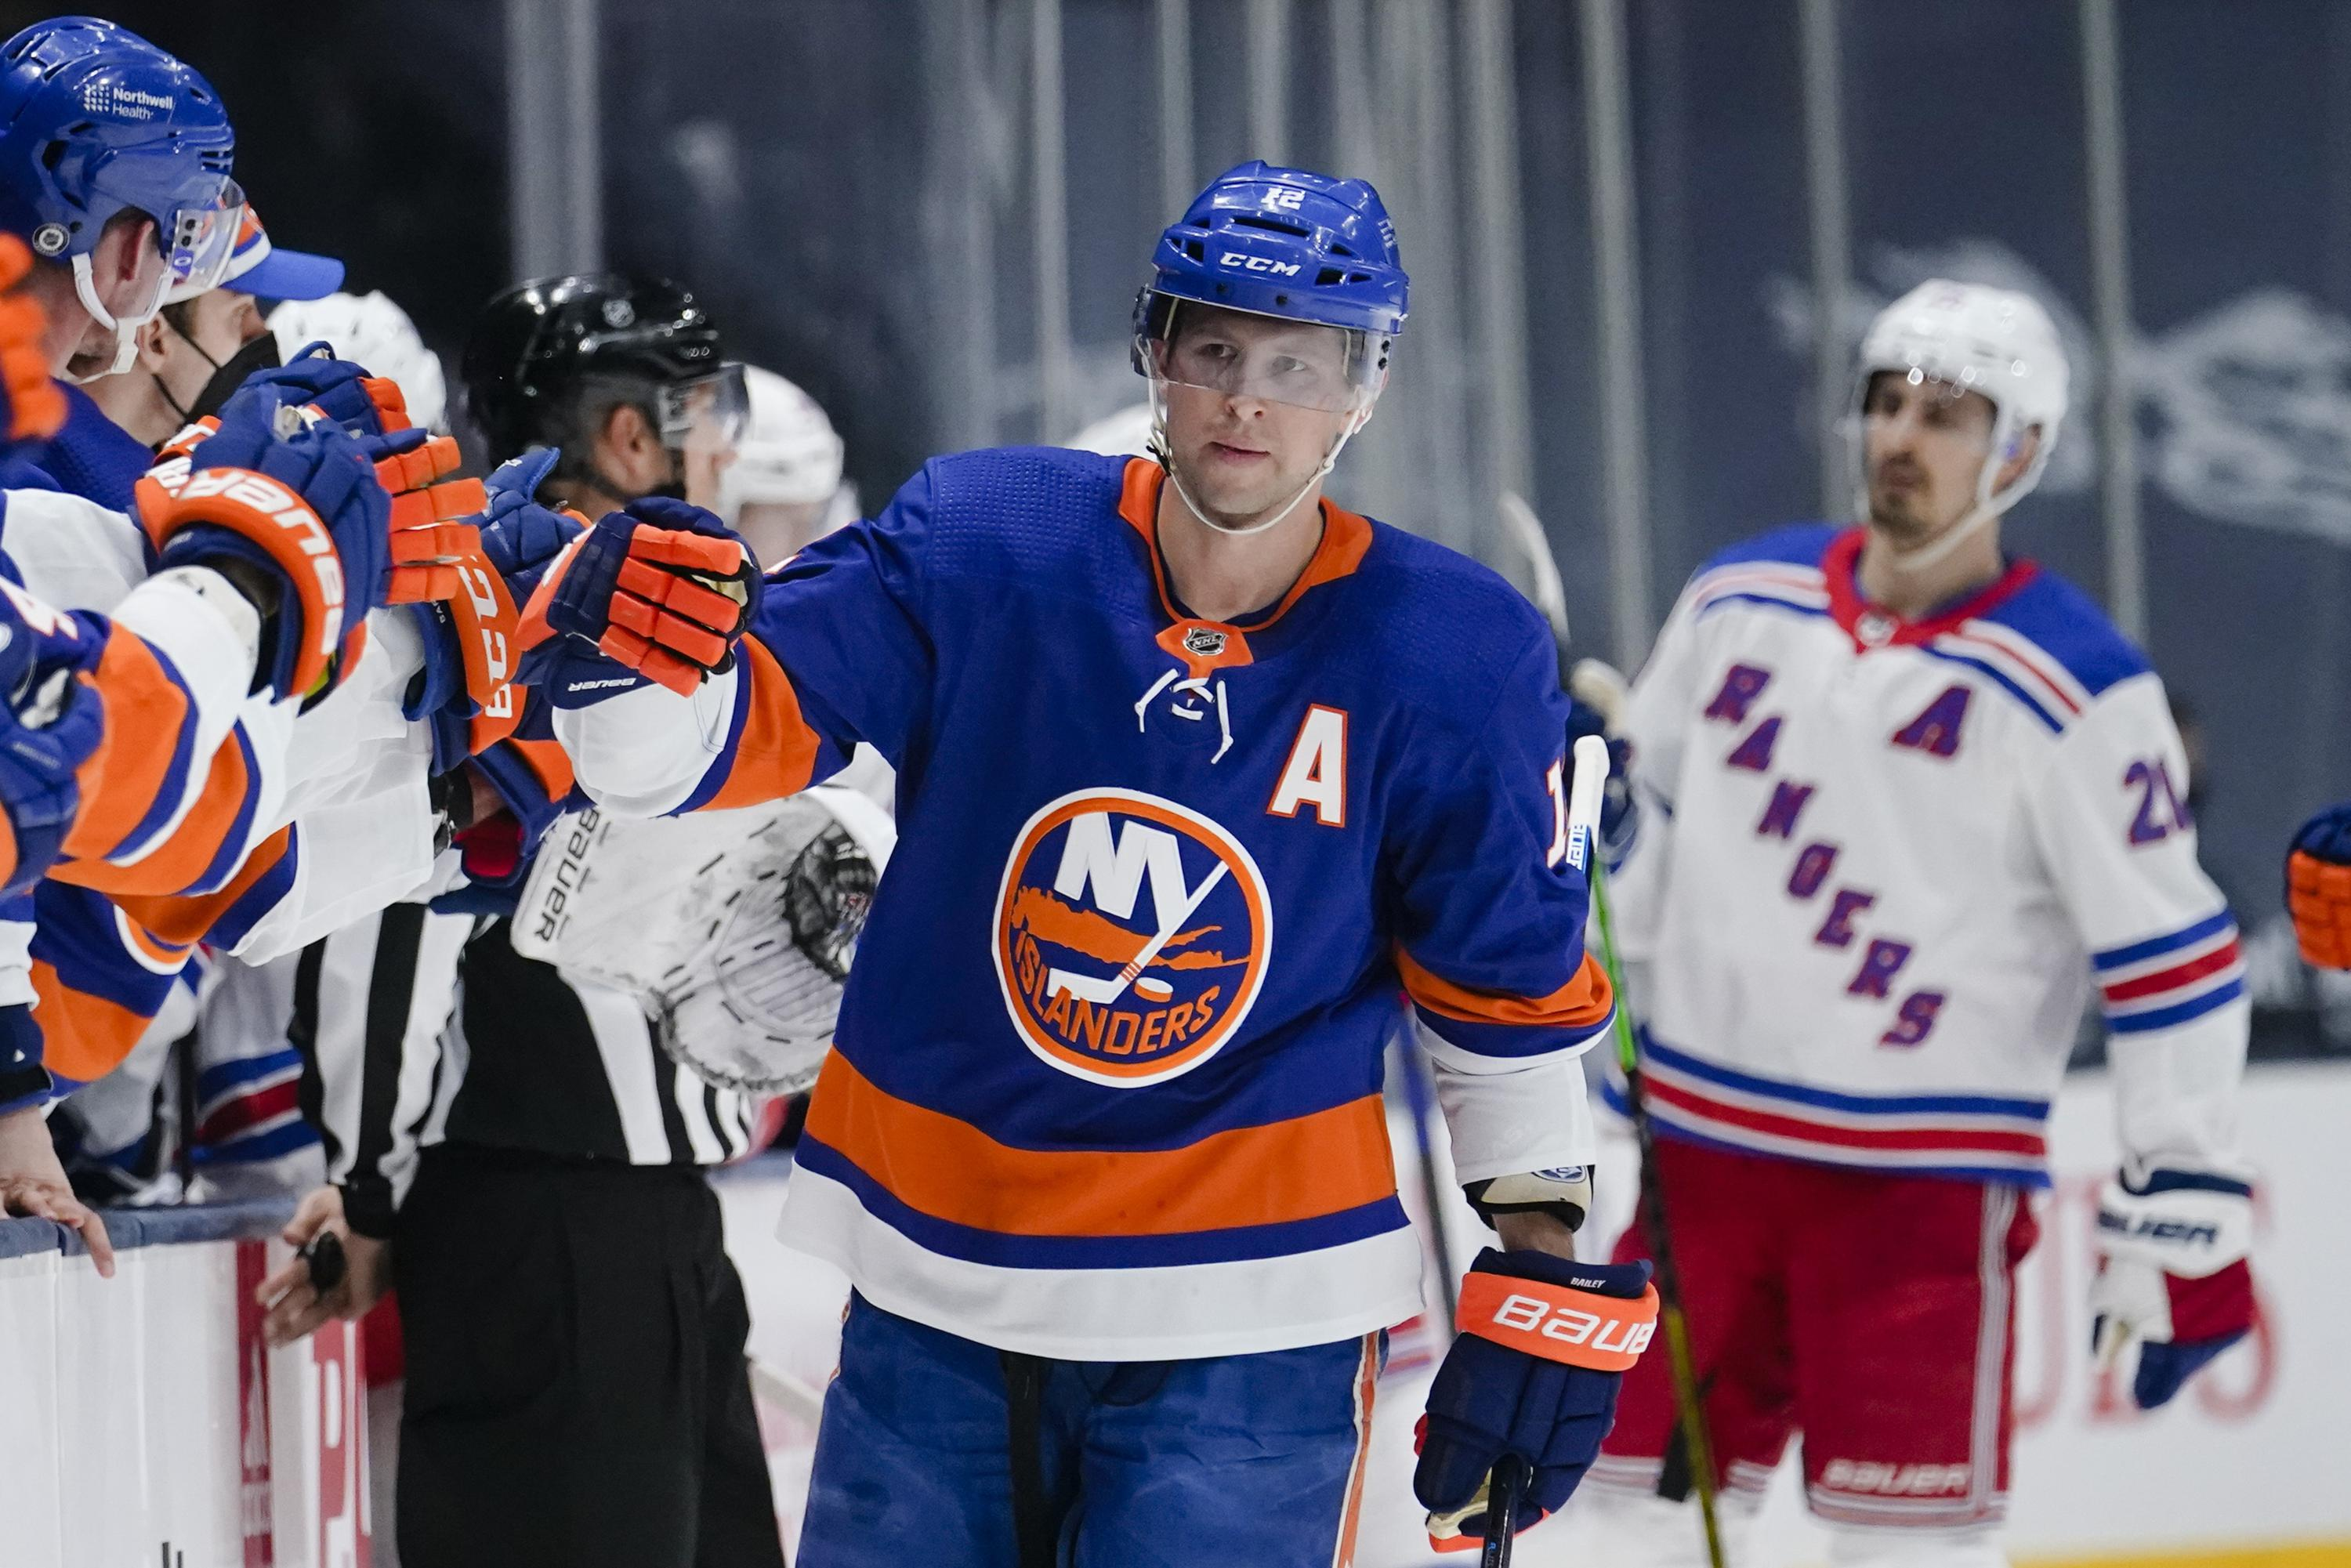 Bailey, Beauvillier lead Islanders to 6-1 win over Rangers